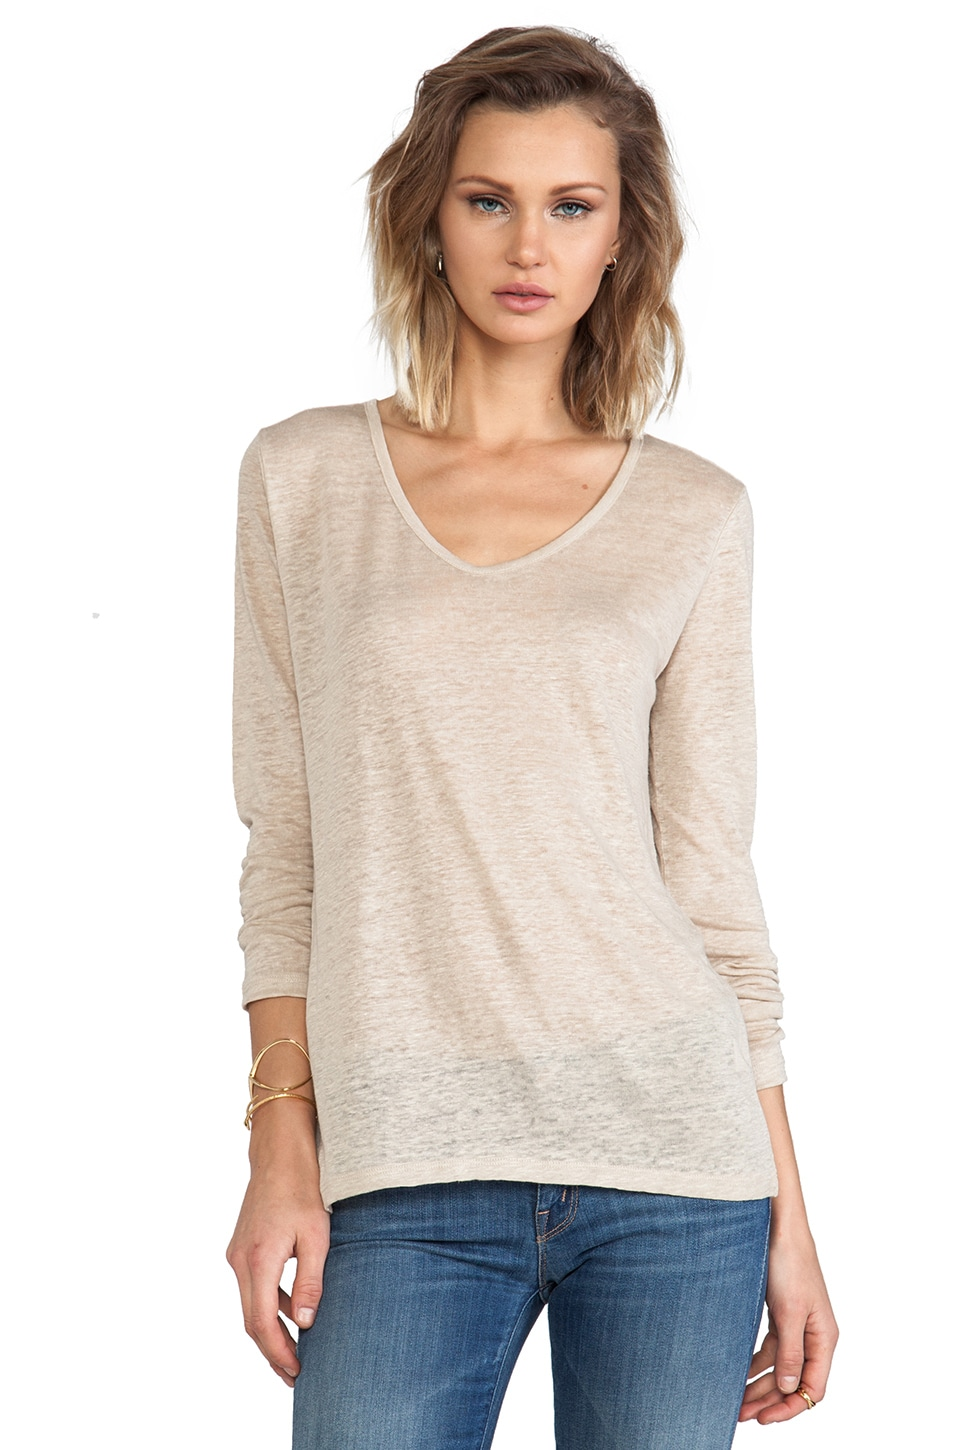 C&C California Long Sleeve Hi-Lo Top in Sand